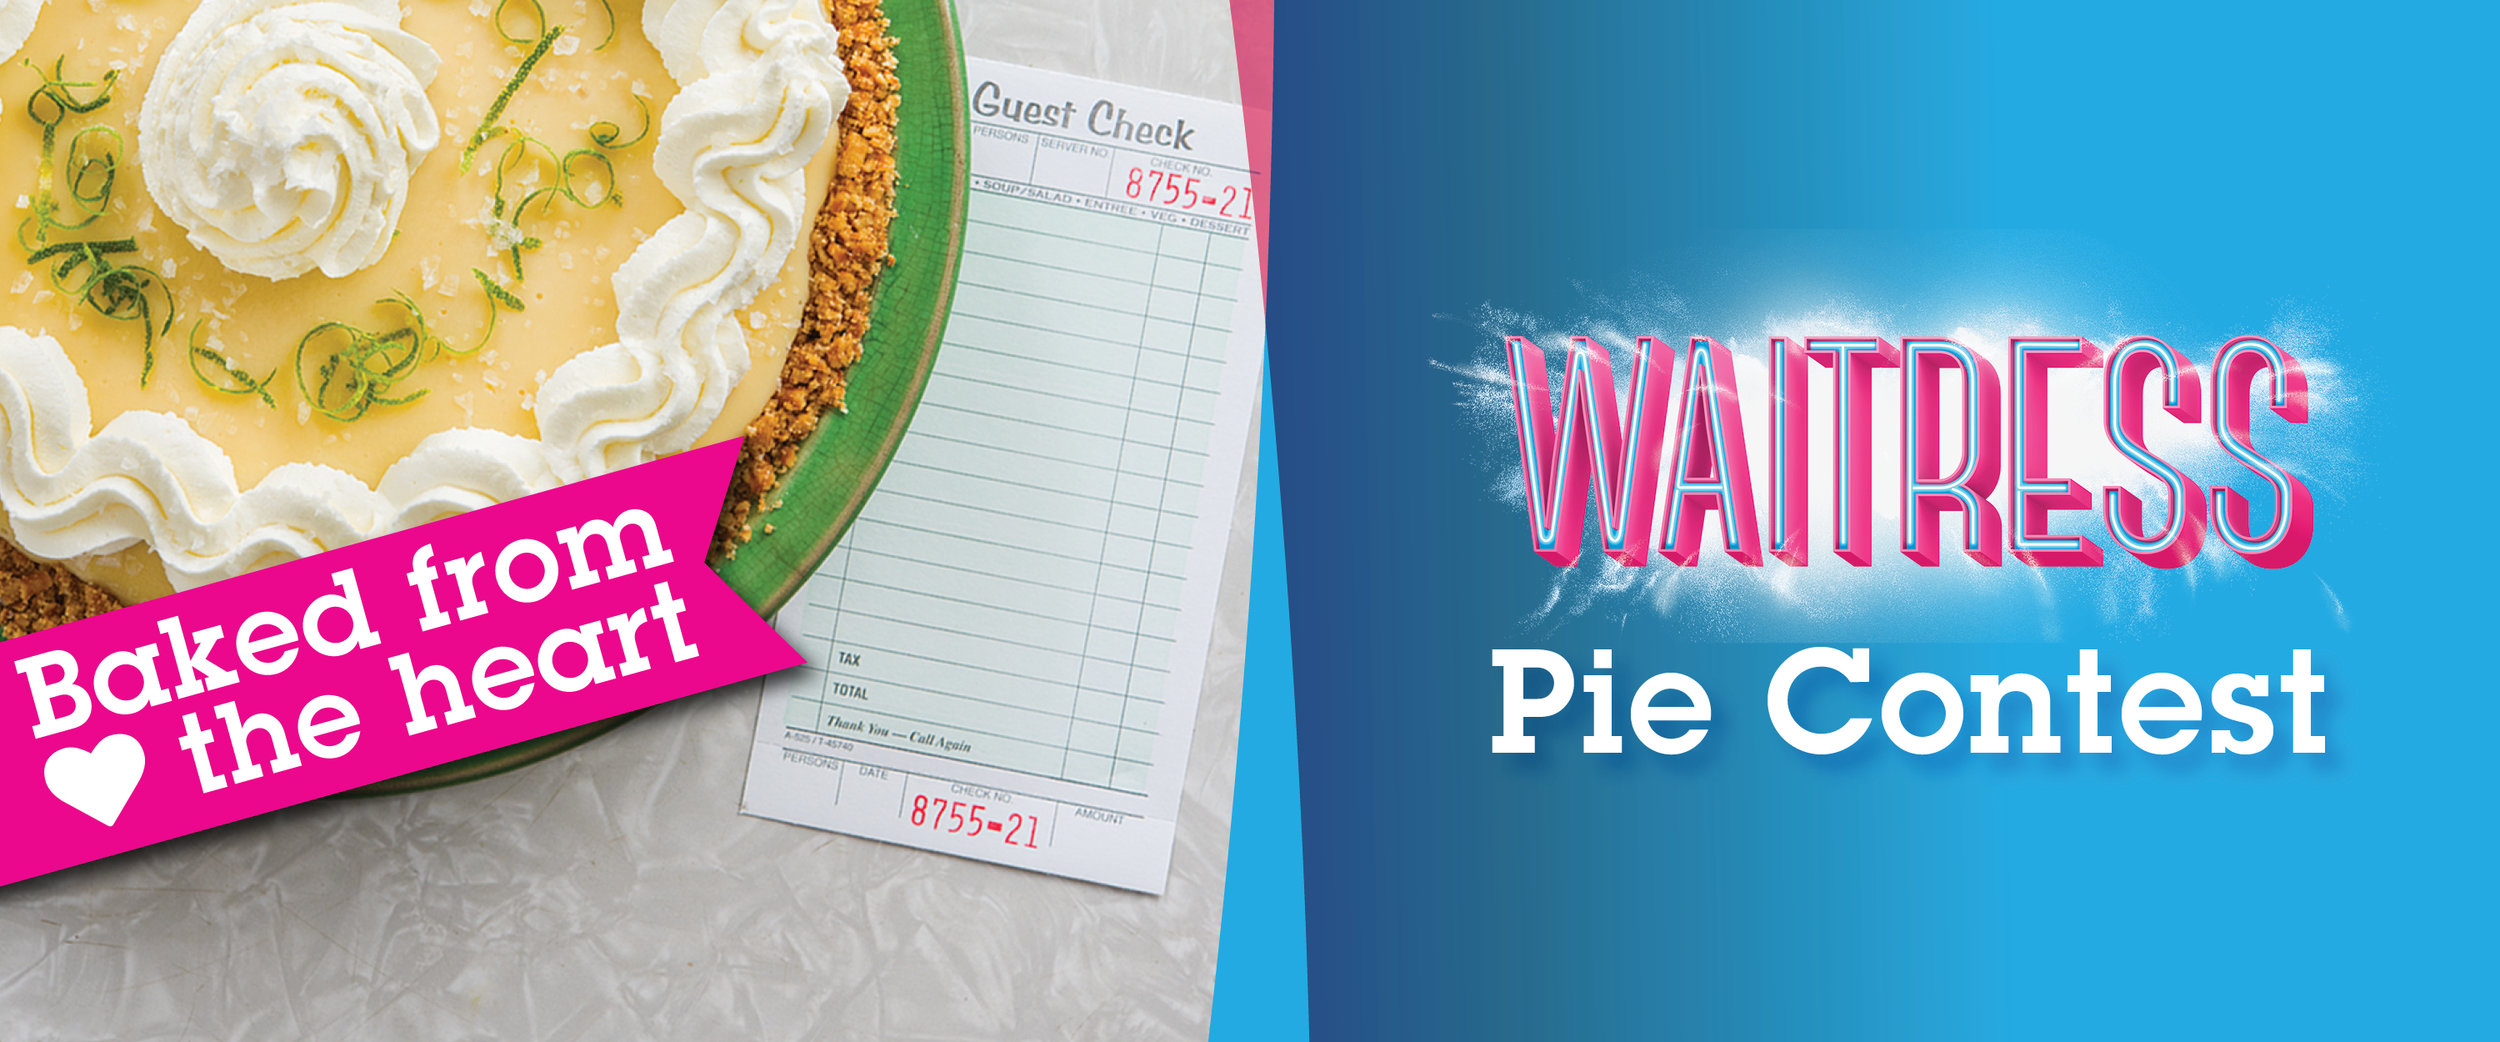 Waitress_PieContest_WebHeaders.jpg